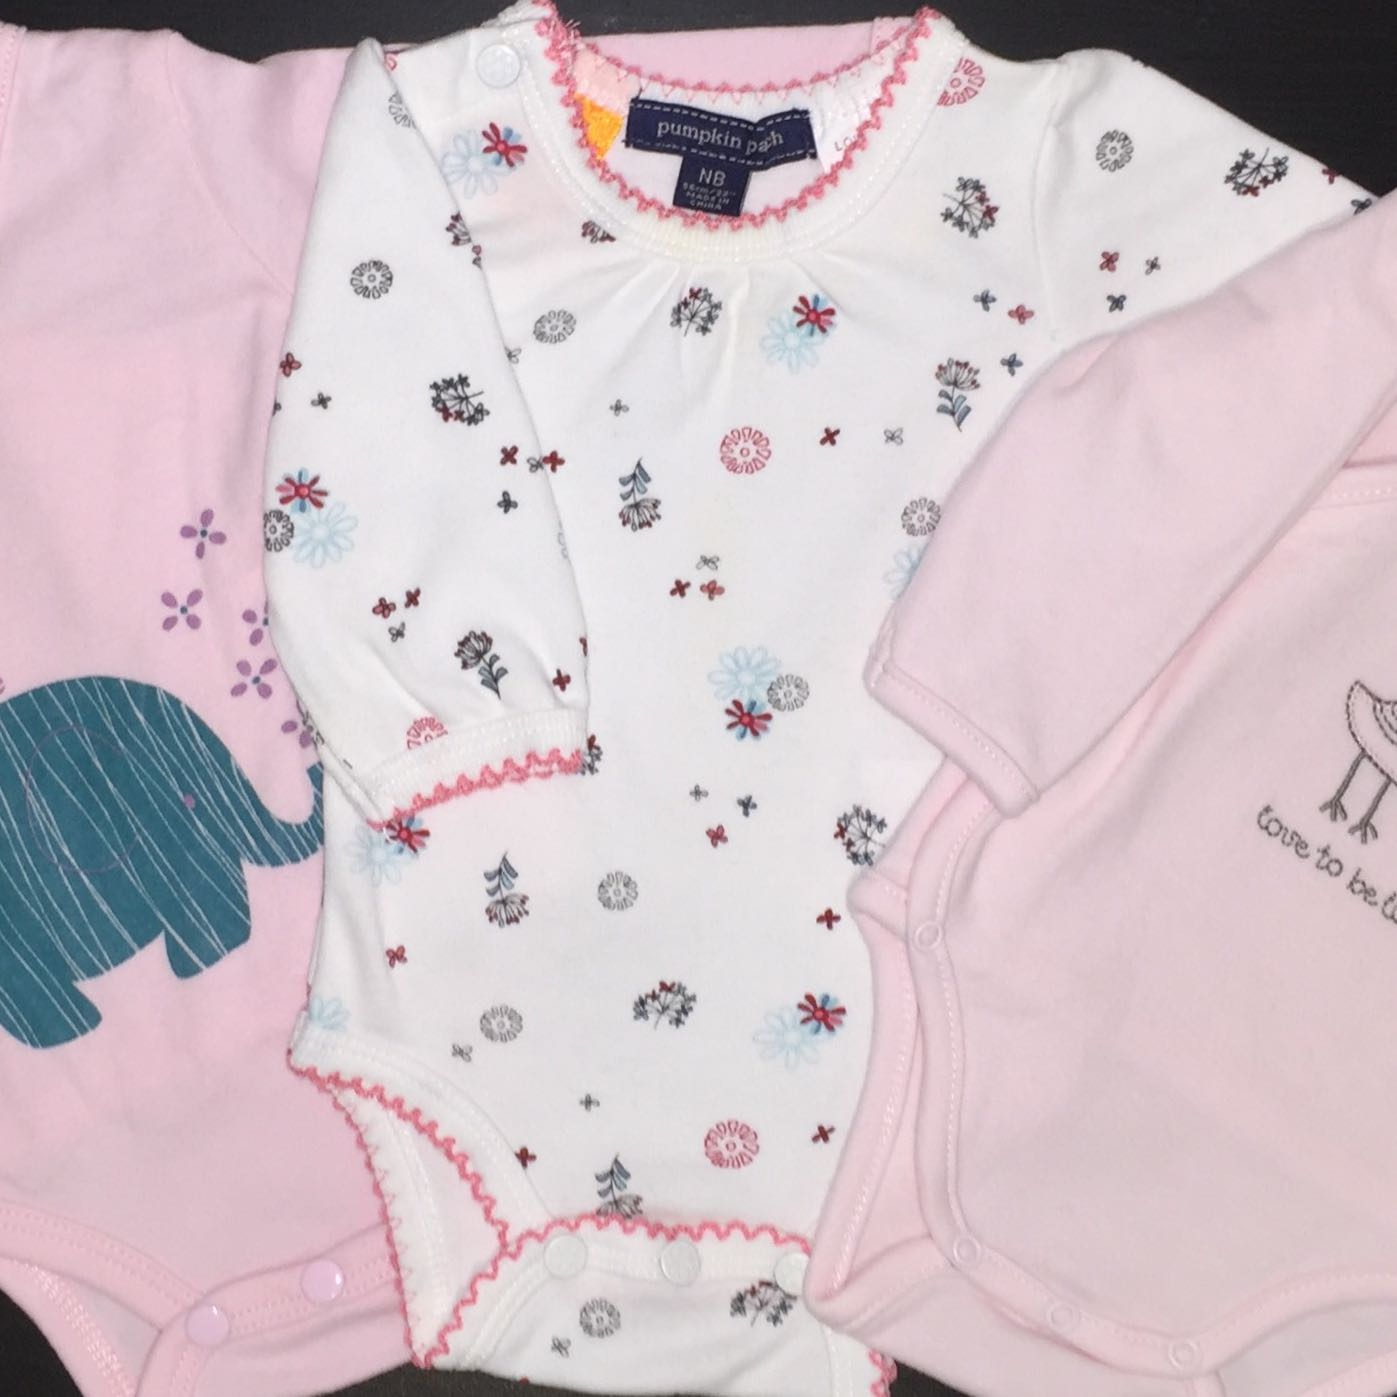 justbabyitems